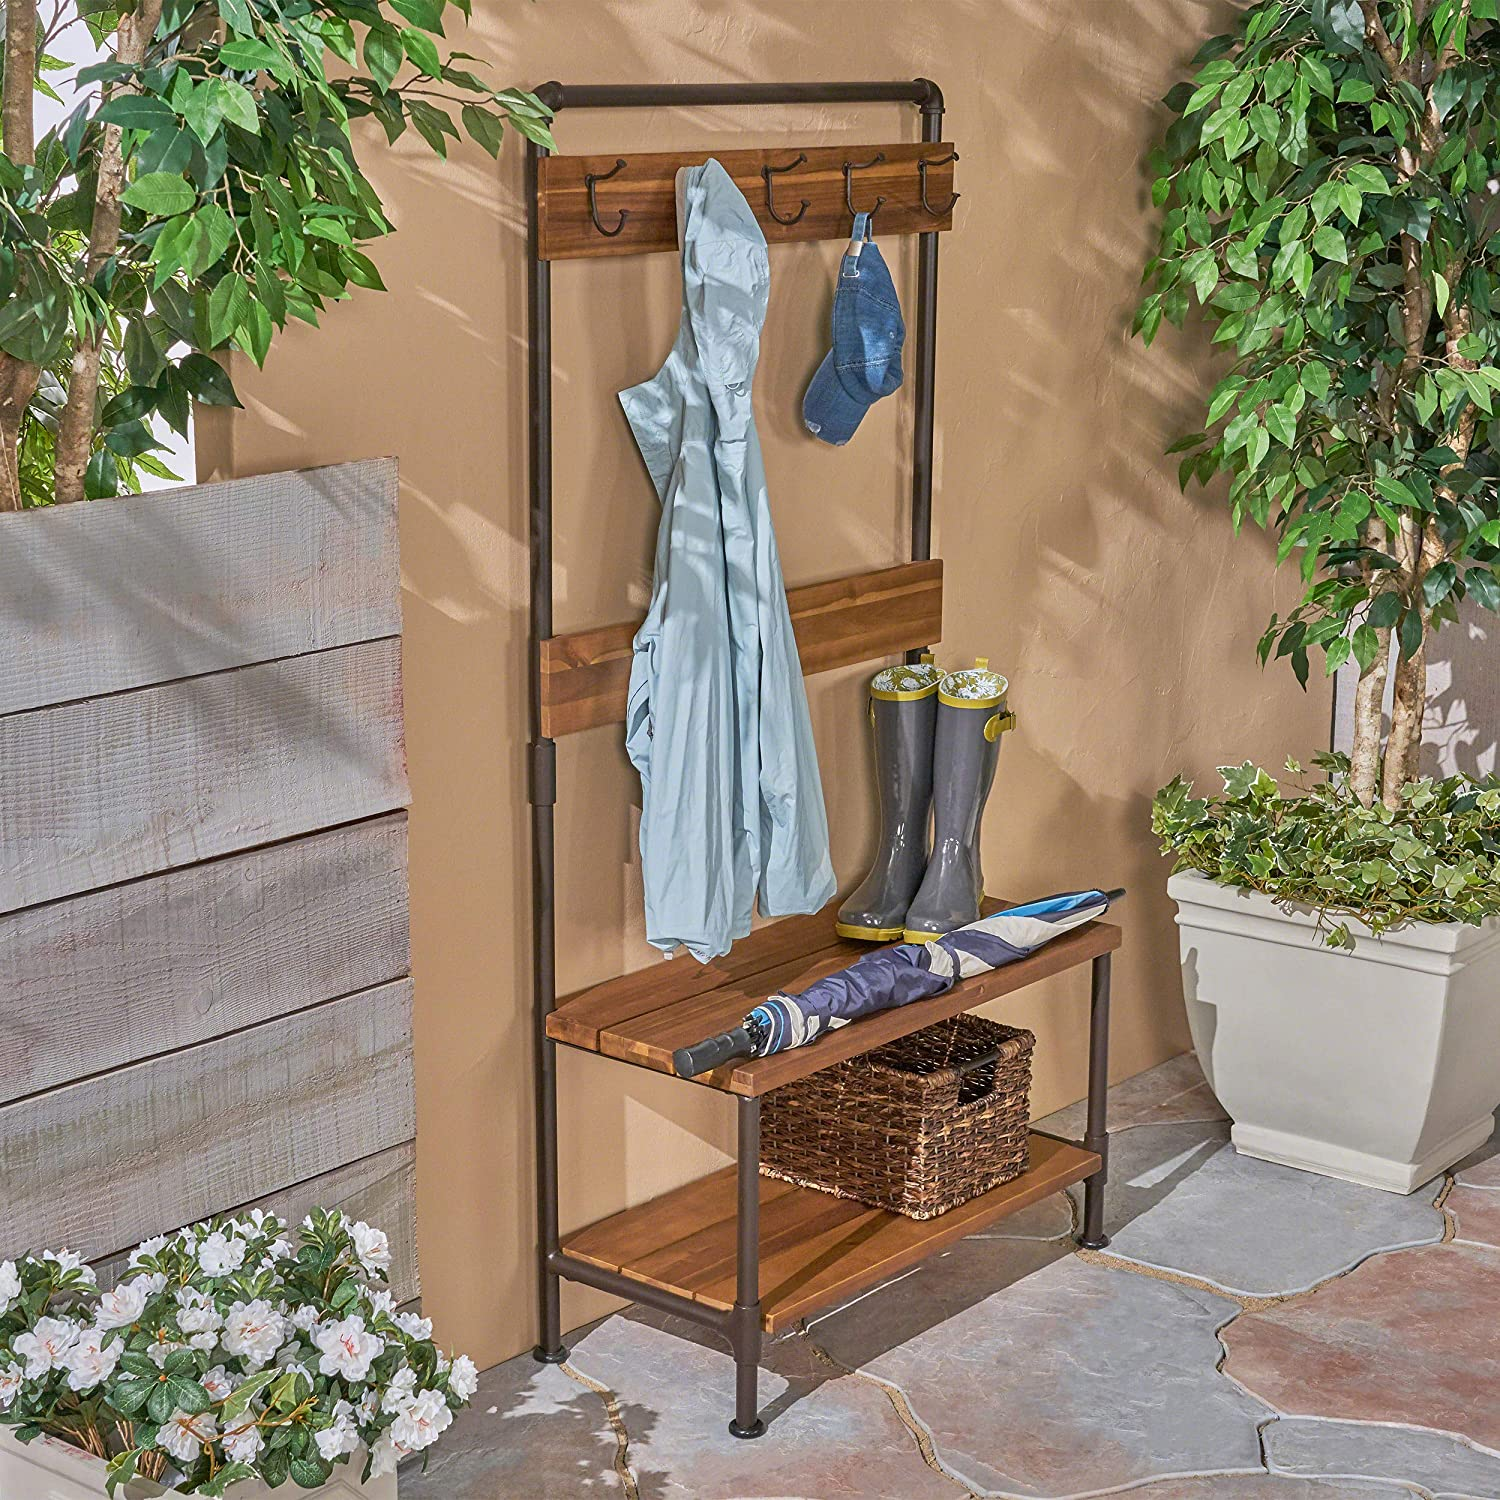 Great Deal Furniture Carlos Outdoor Industrial Acacia Wood Bench with Shelf and Coat Hooks, Teak Finish